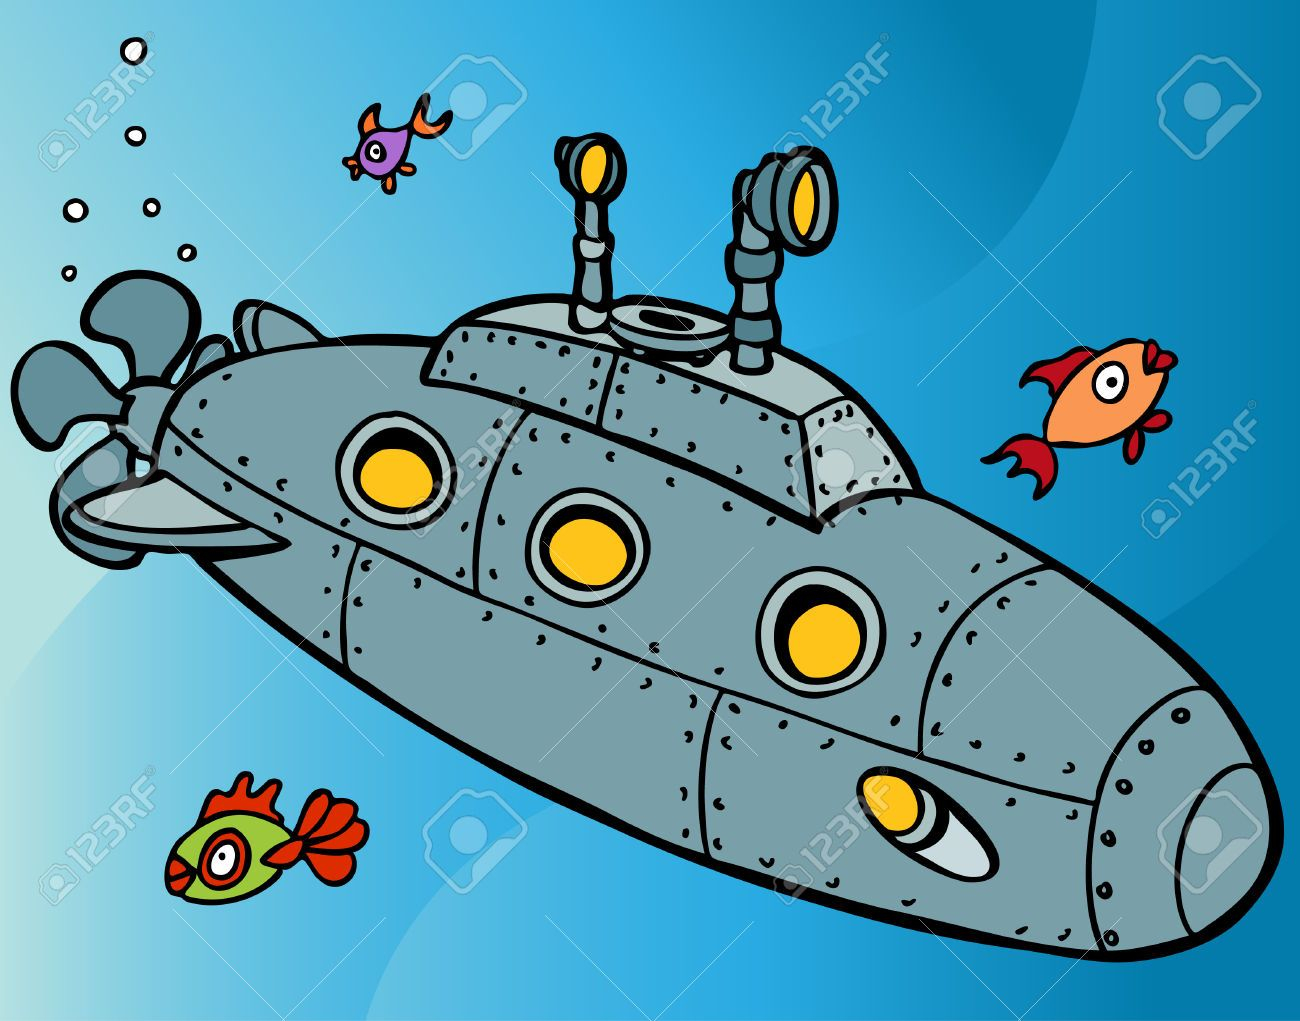 Submarine clipart free download clip royalty free download Submarine Clipart – Free Clipart Images clip royalty free download